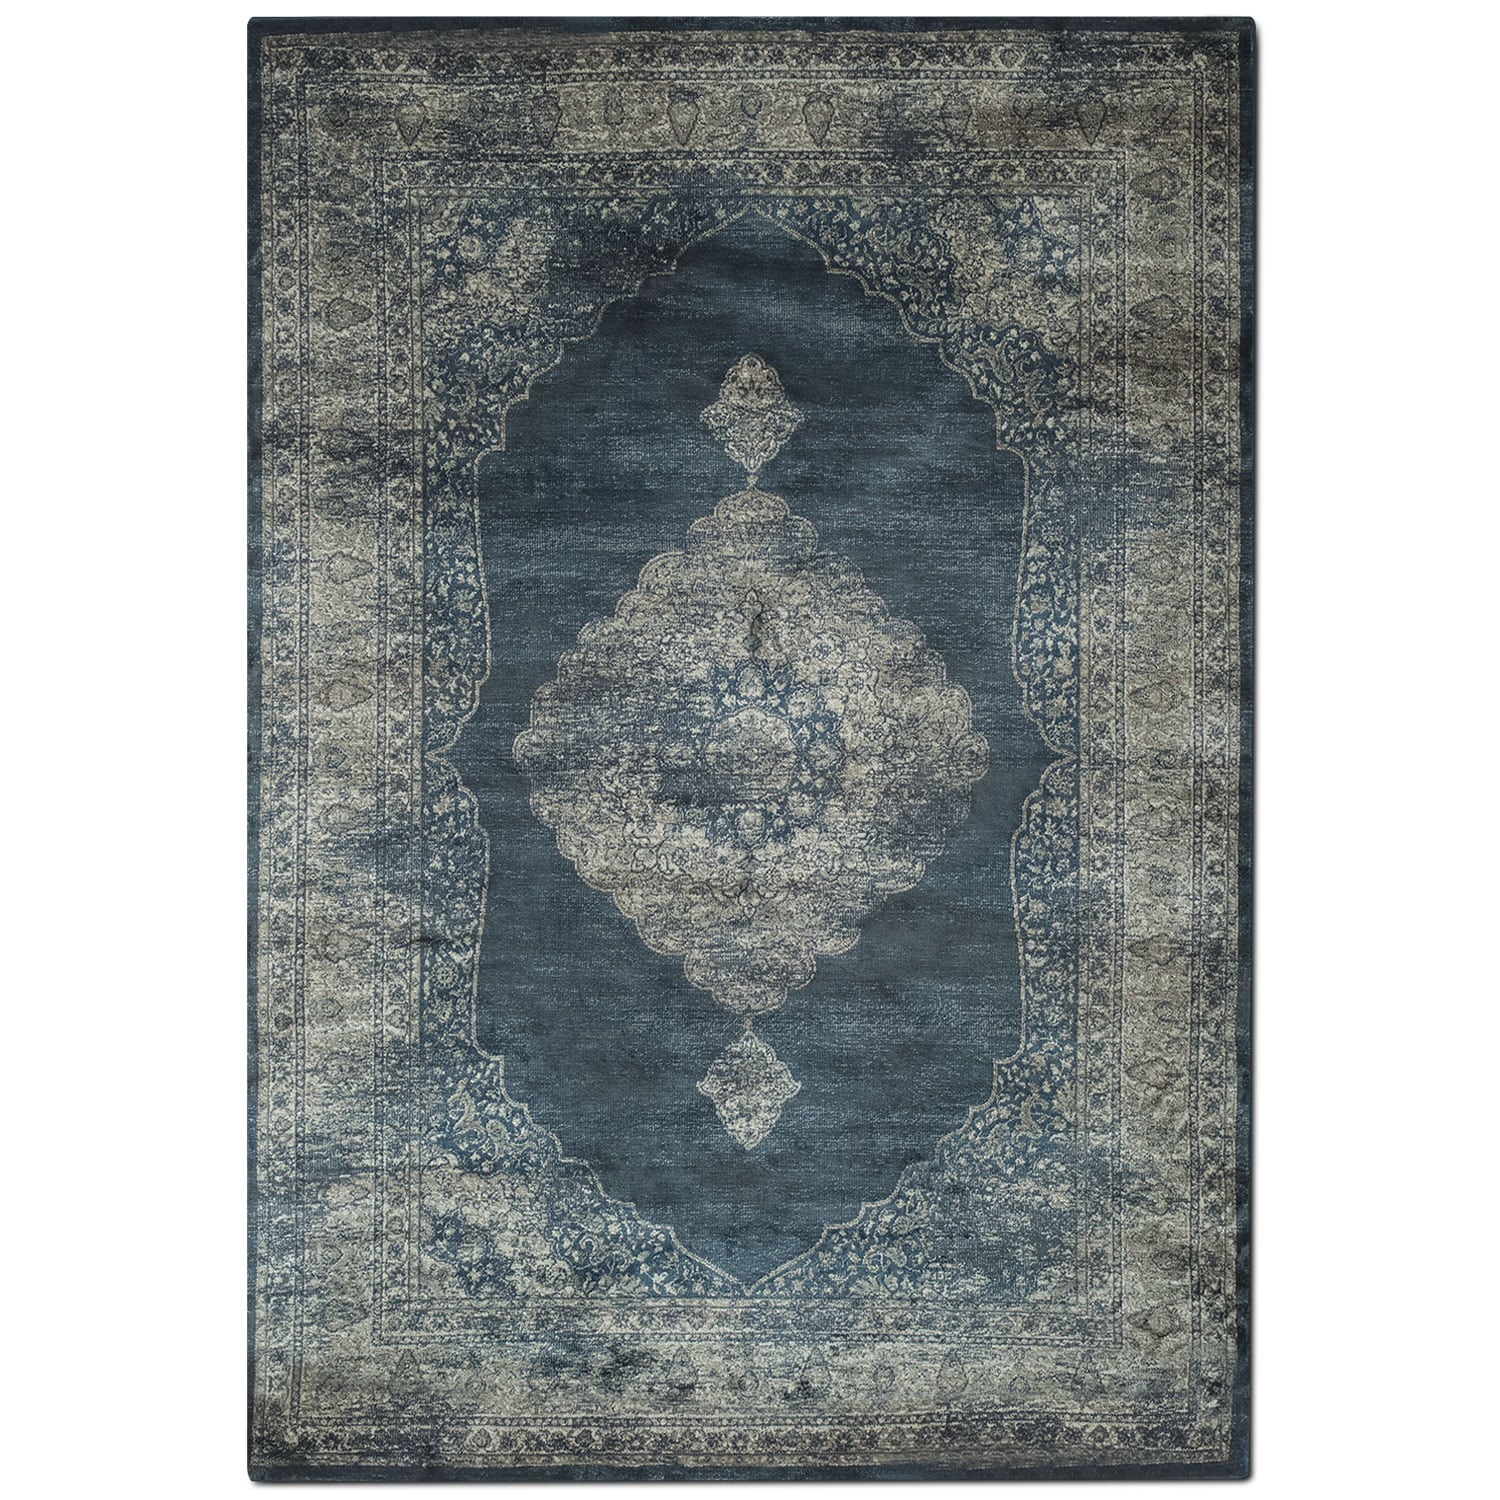 Sonoma 5' x 8' Area Rug - Beige and Gray